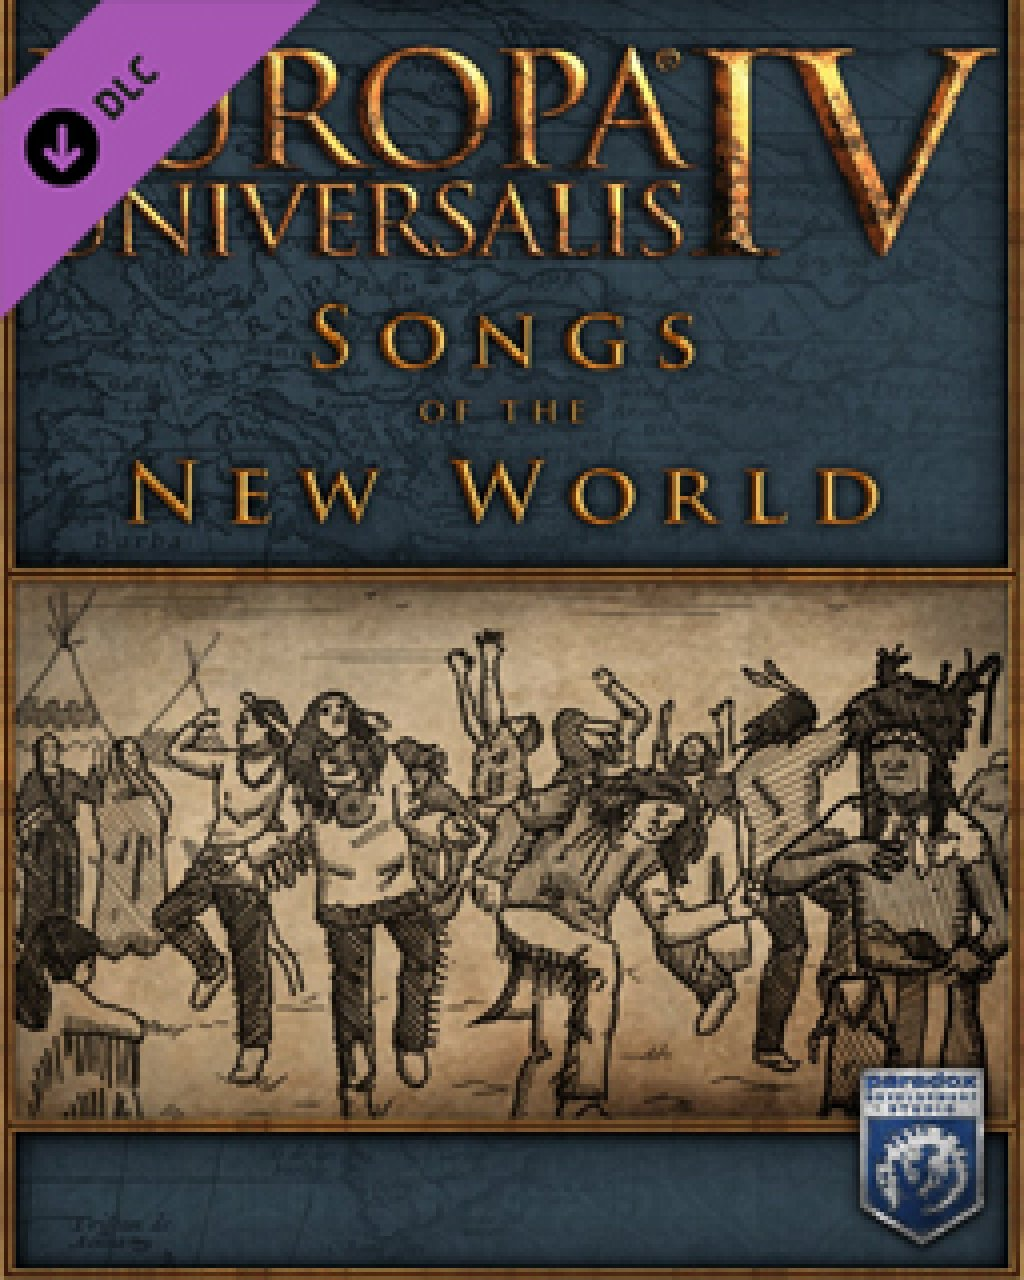 Europa Universalis IV Songs of the New World krabice